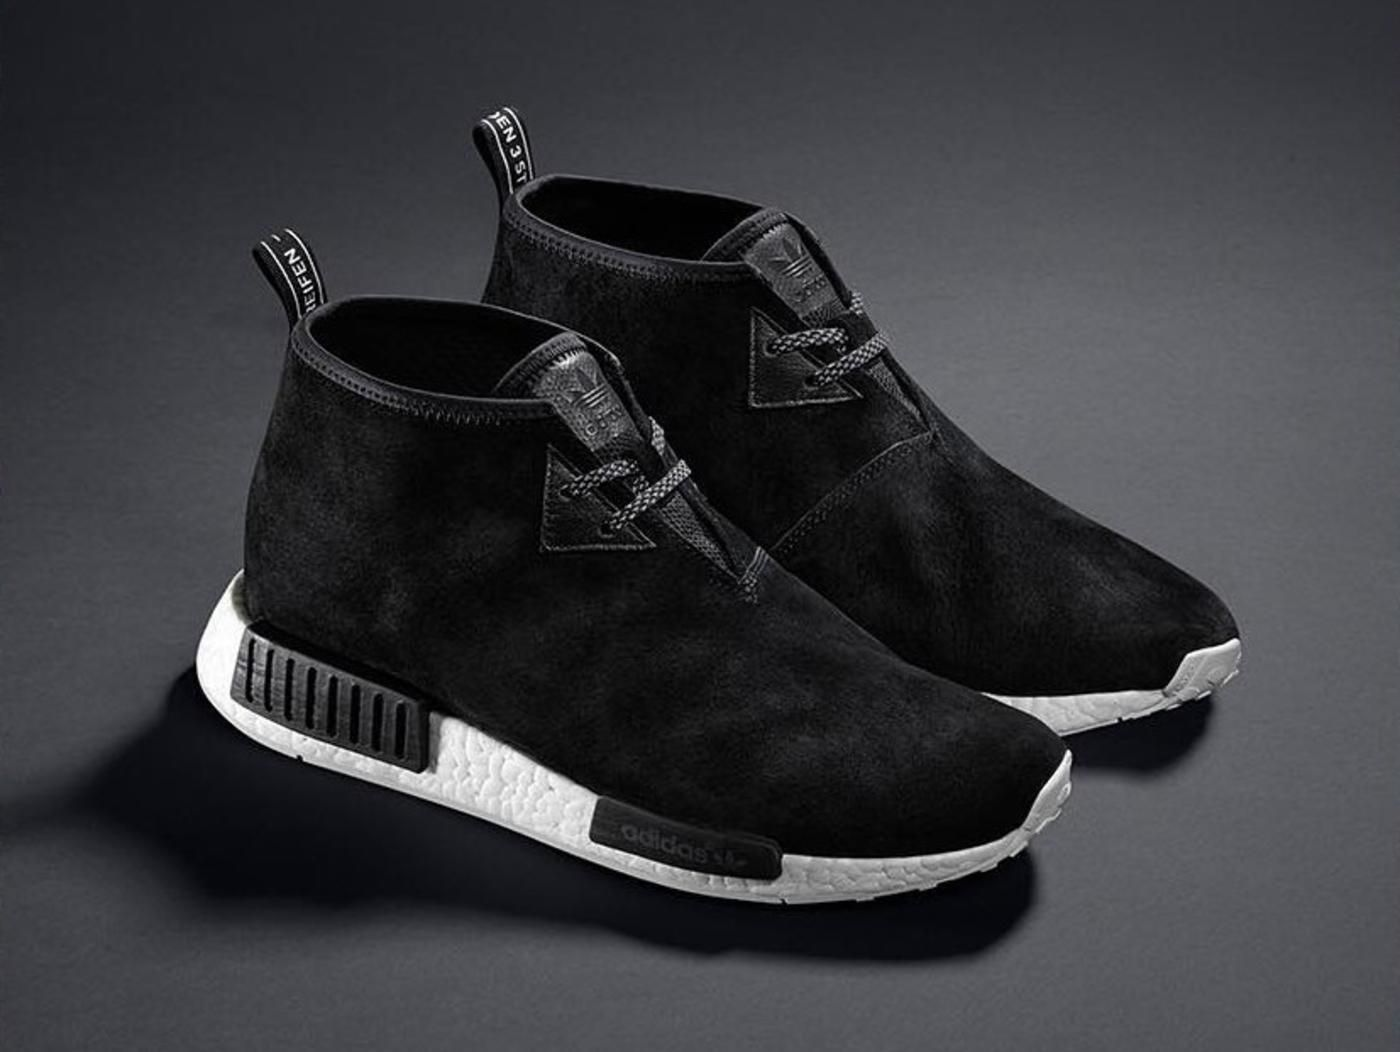 The adidas NMD Chukka